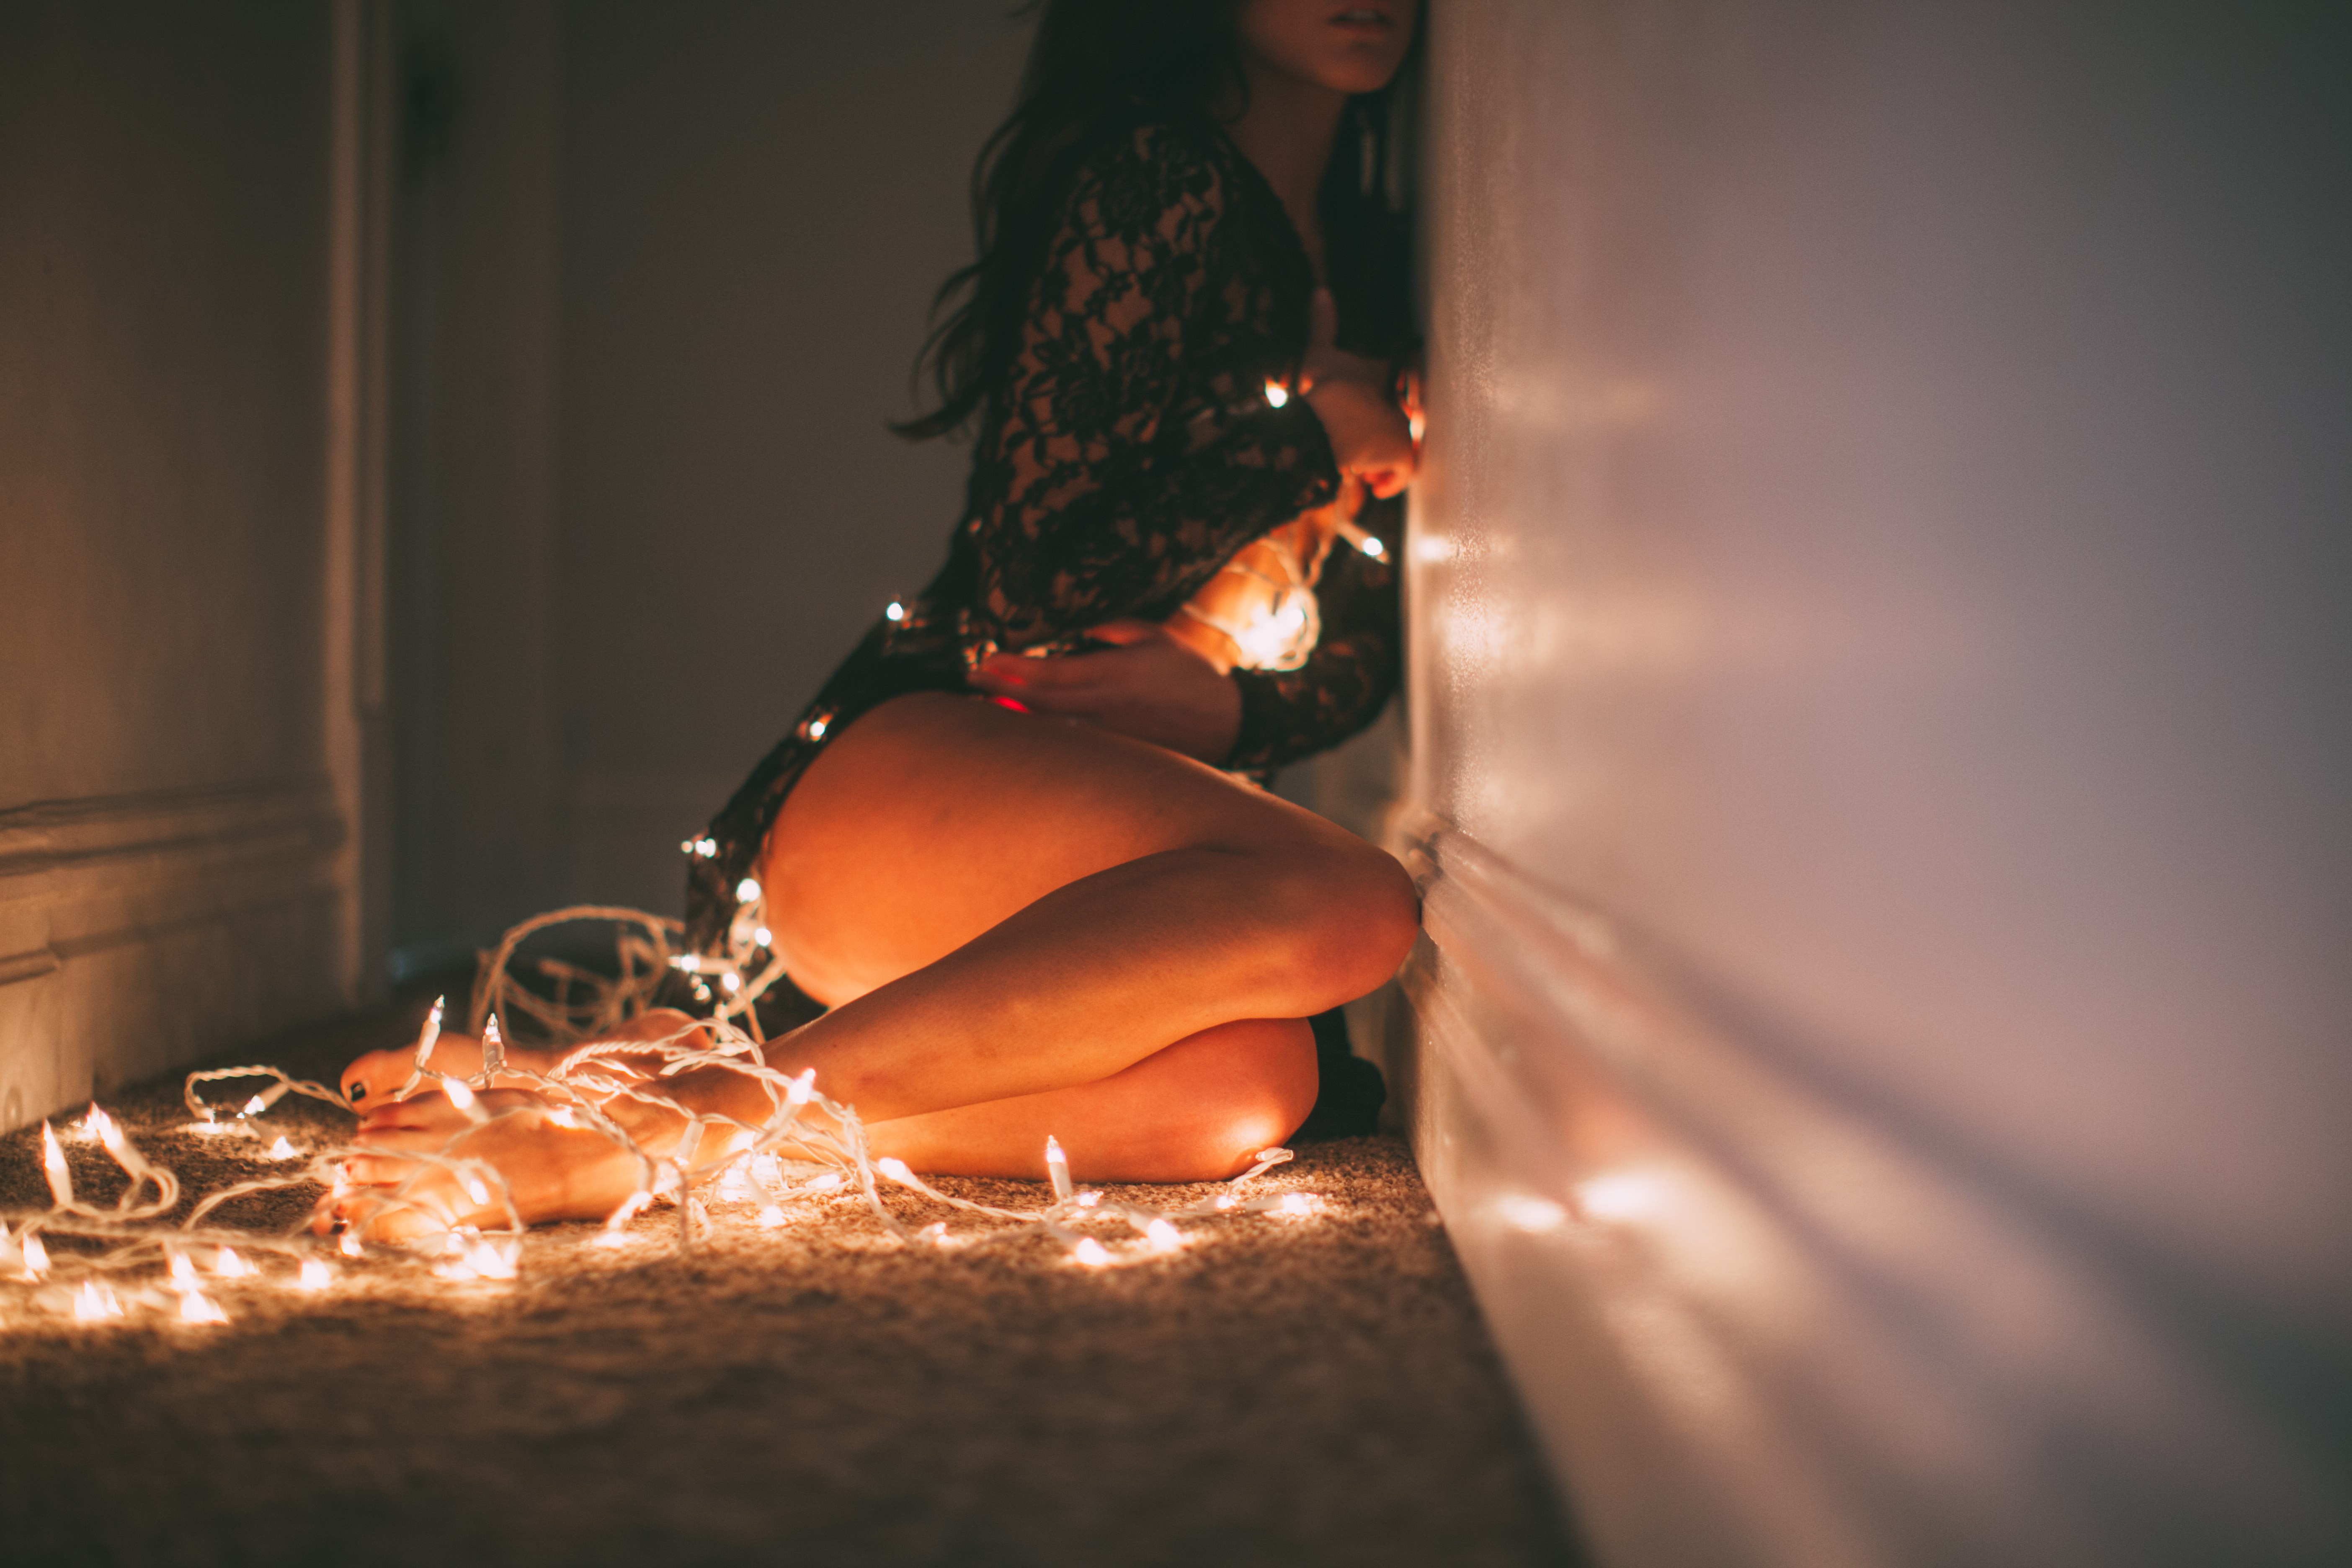 legs christmas lights women open mouth lights